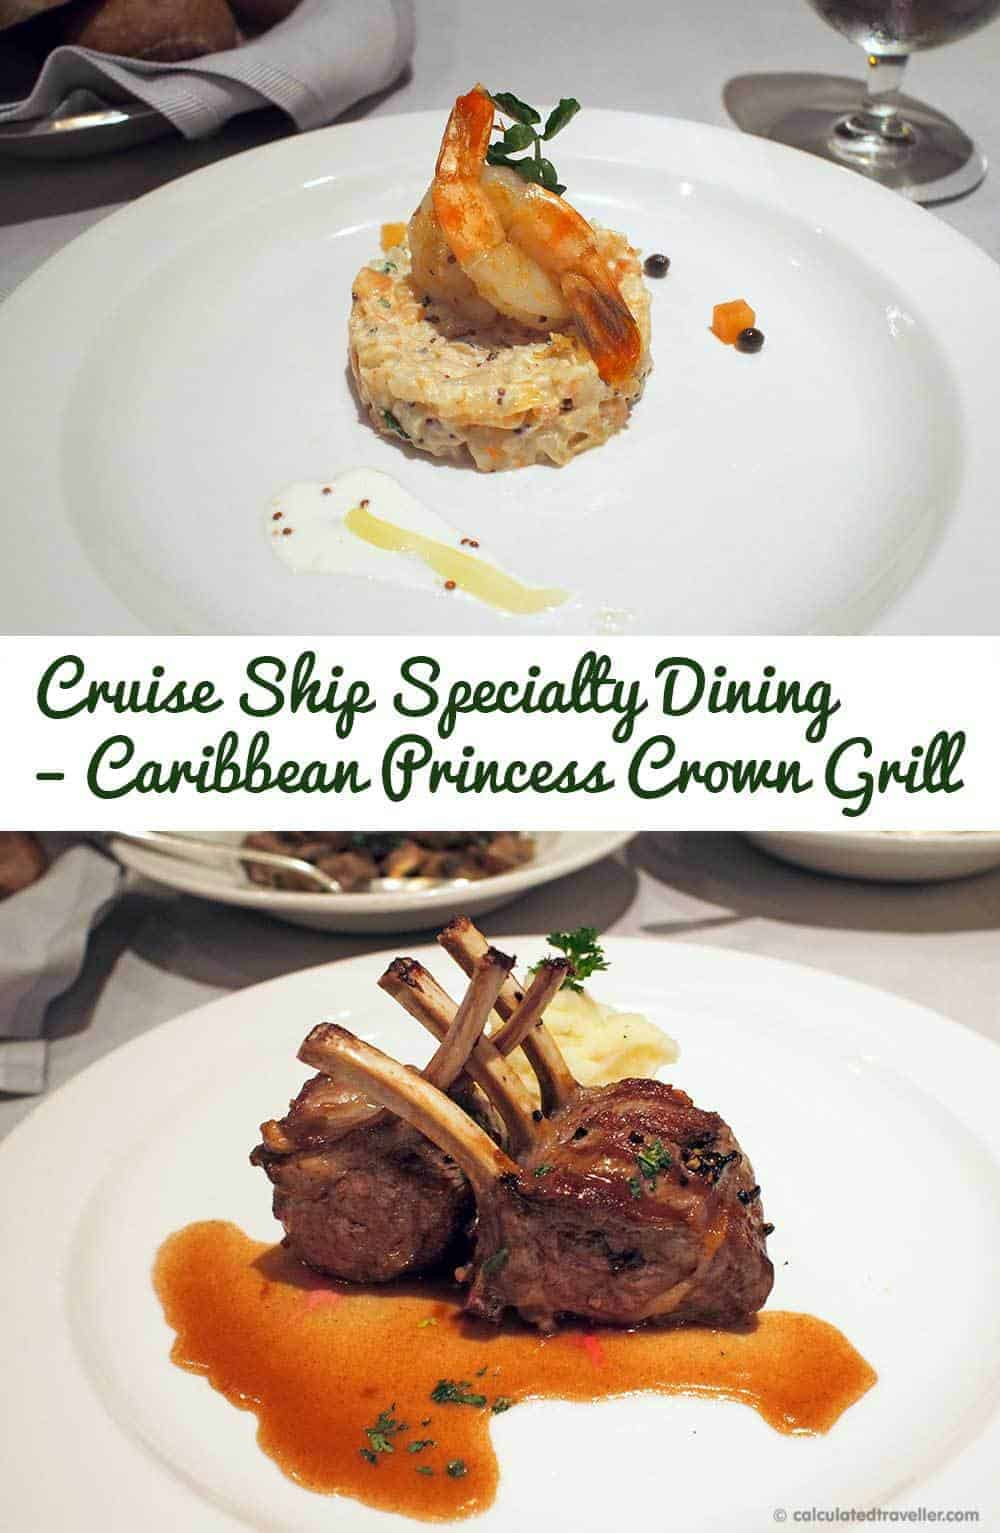 Cruise Ship Specialty Dining – Caribbean Princess Crown Grill a Review by Calculated Traveller